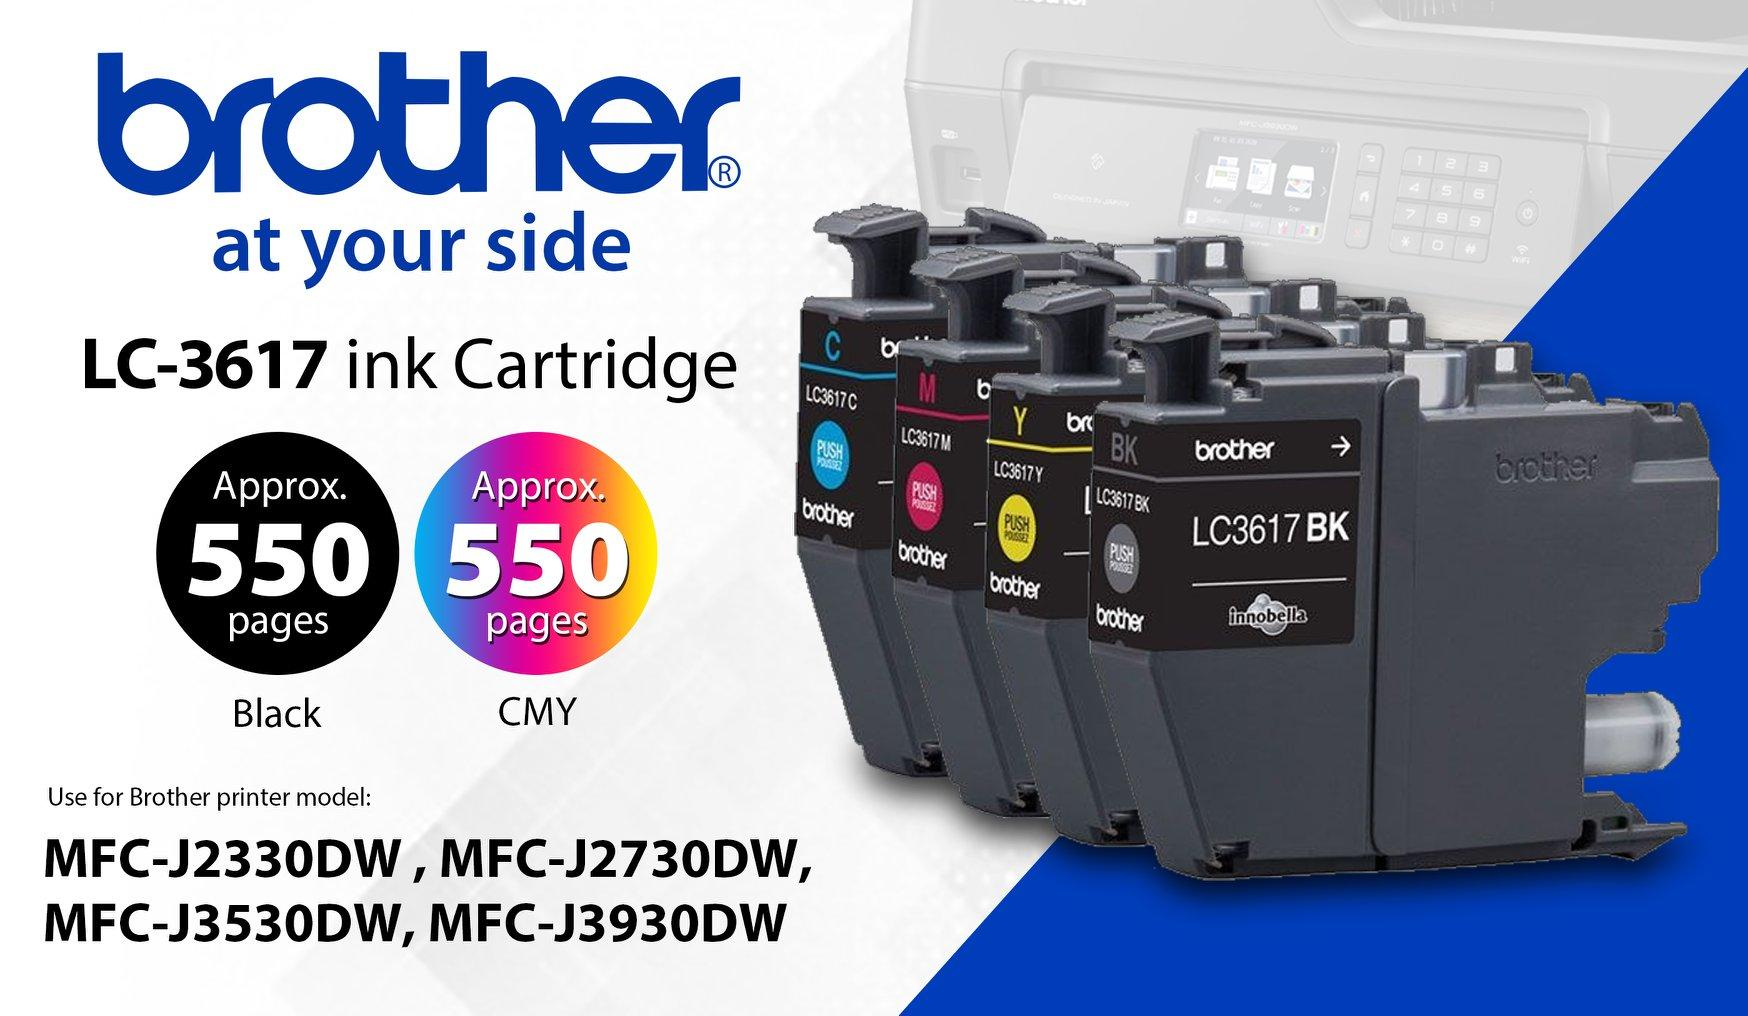 Brother Colour Inkjet Multi-Function LC3617 for  MFC-J3930/MFC-J3530/MFC-J2730/MFC-J2330 C/M/Y/K Set Colors